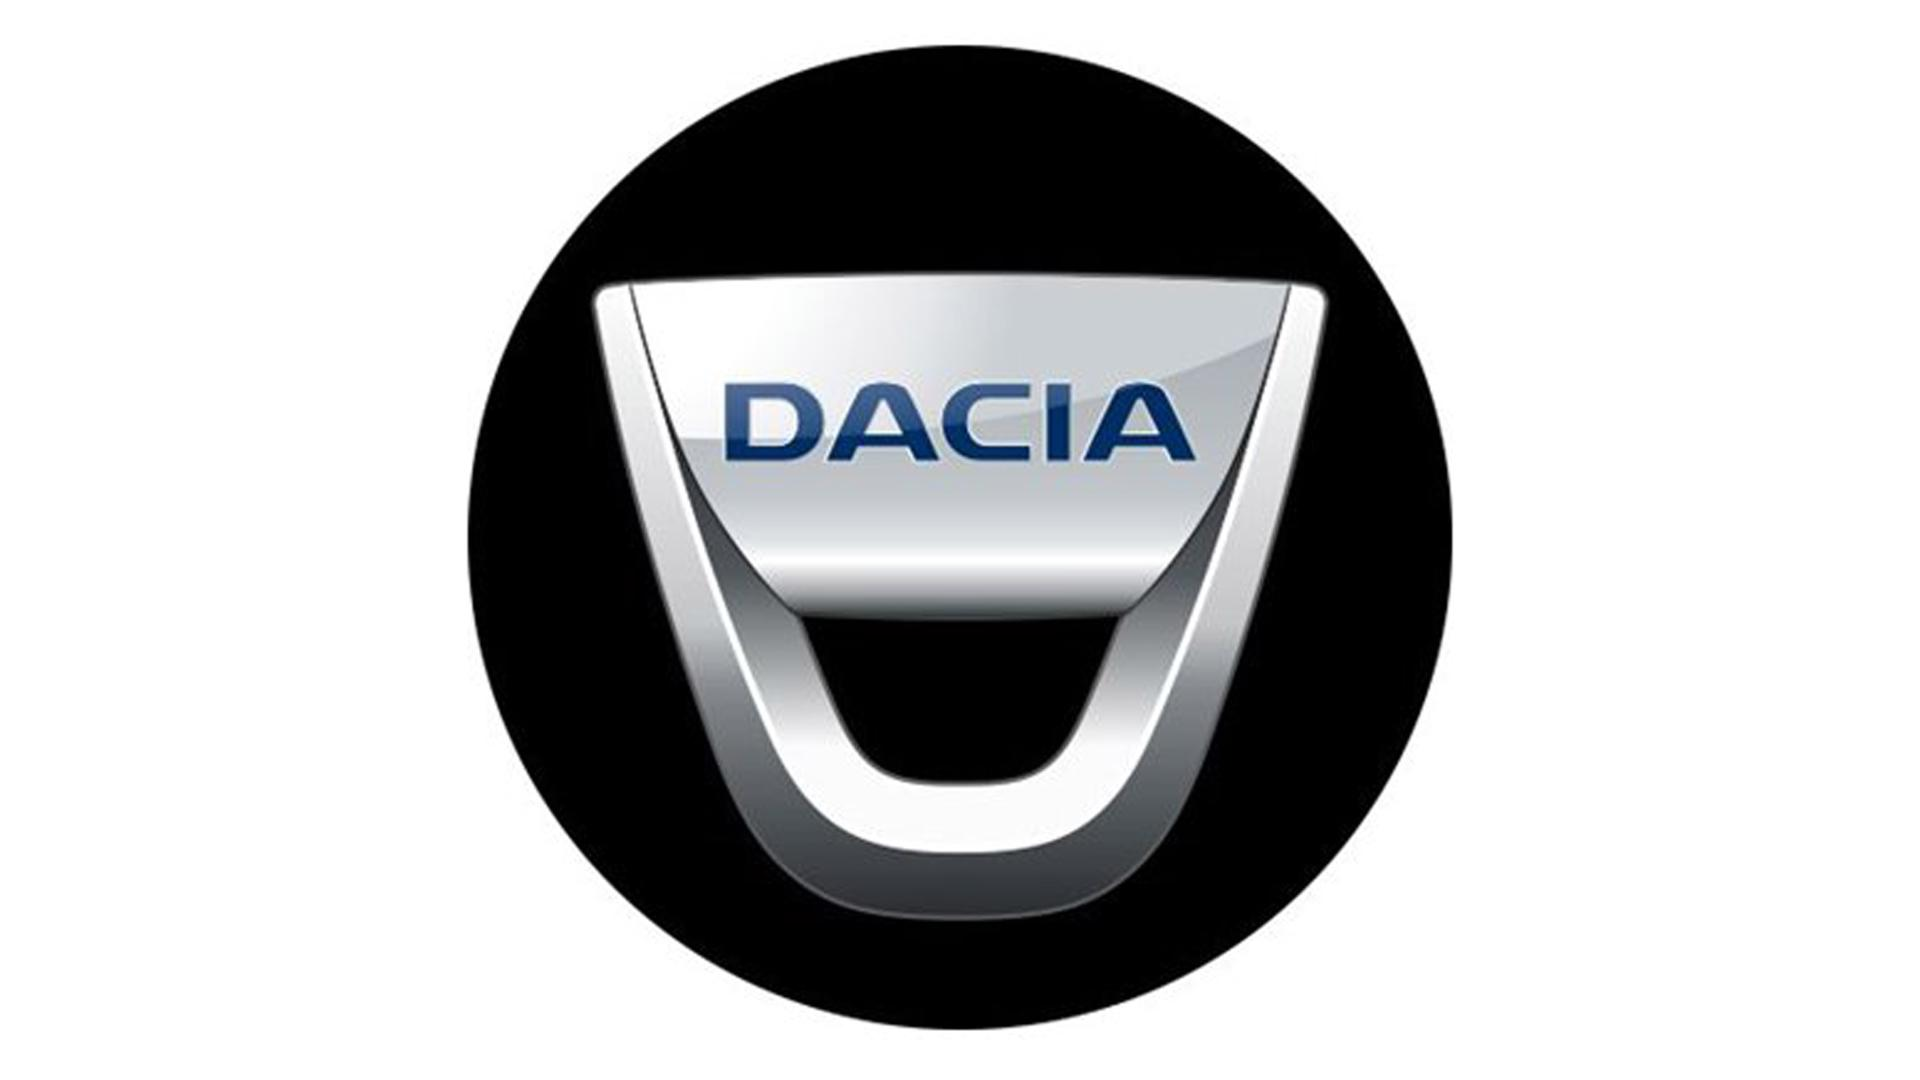 4CARS 3D CAR LOGO DACIA